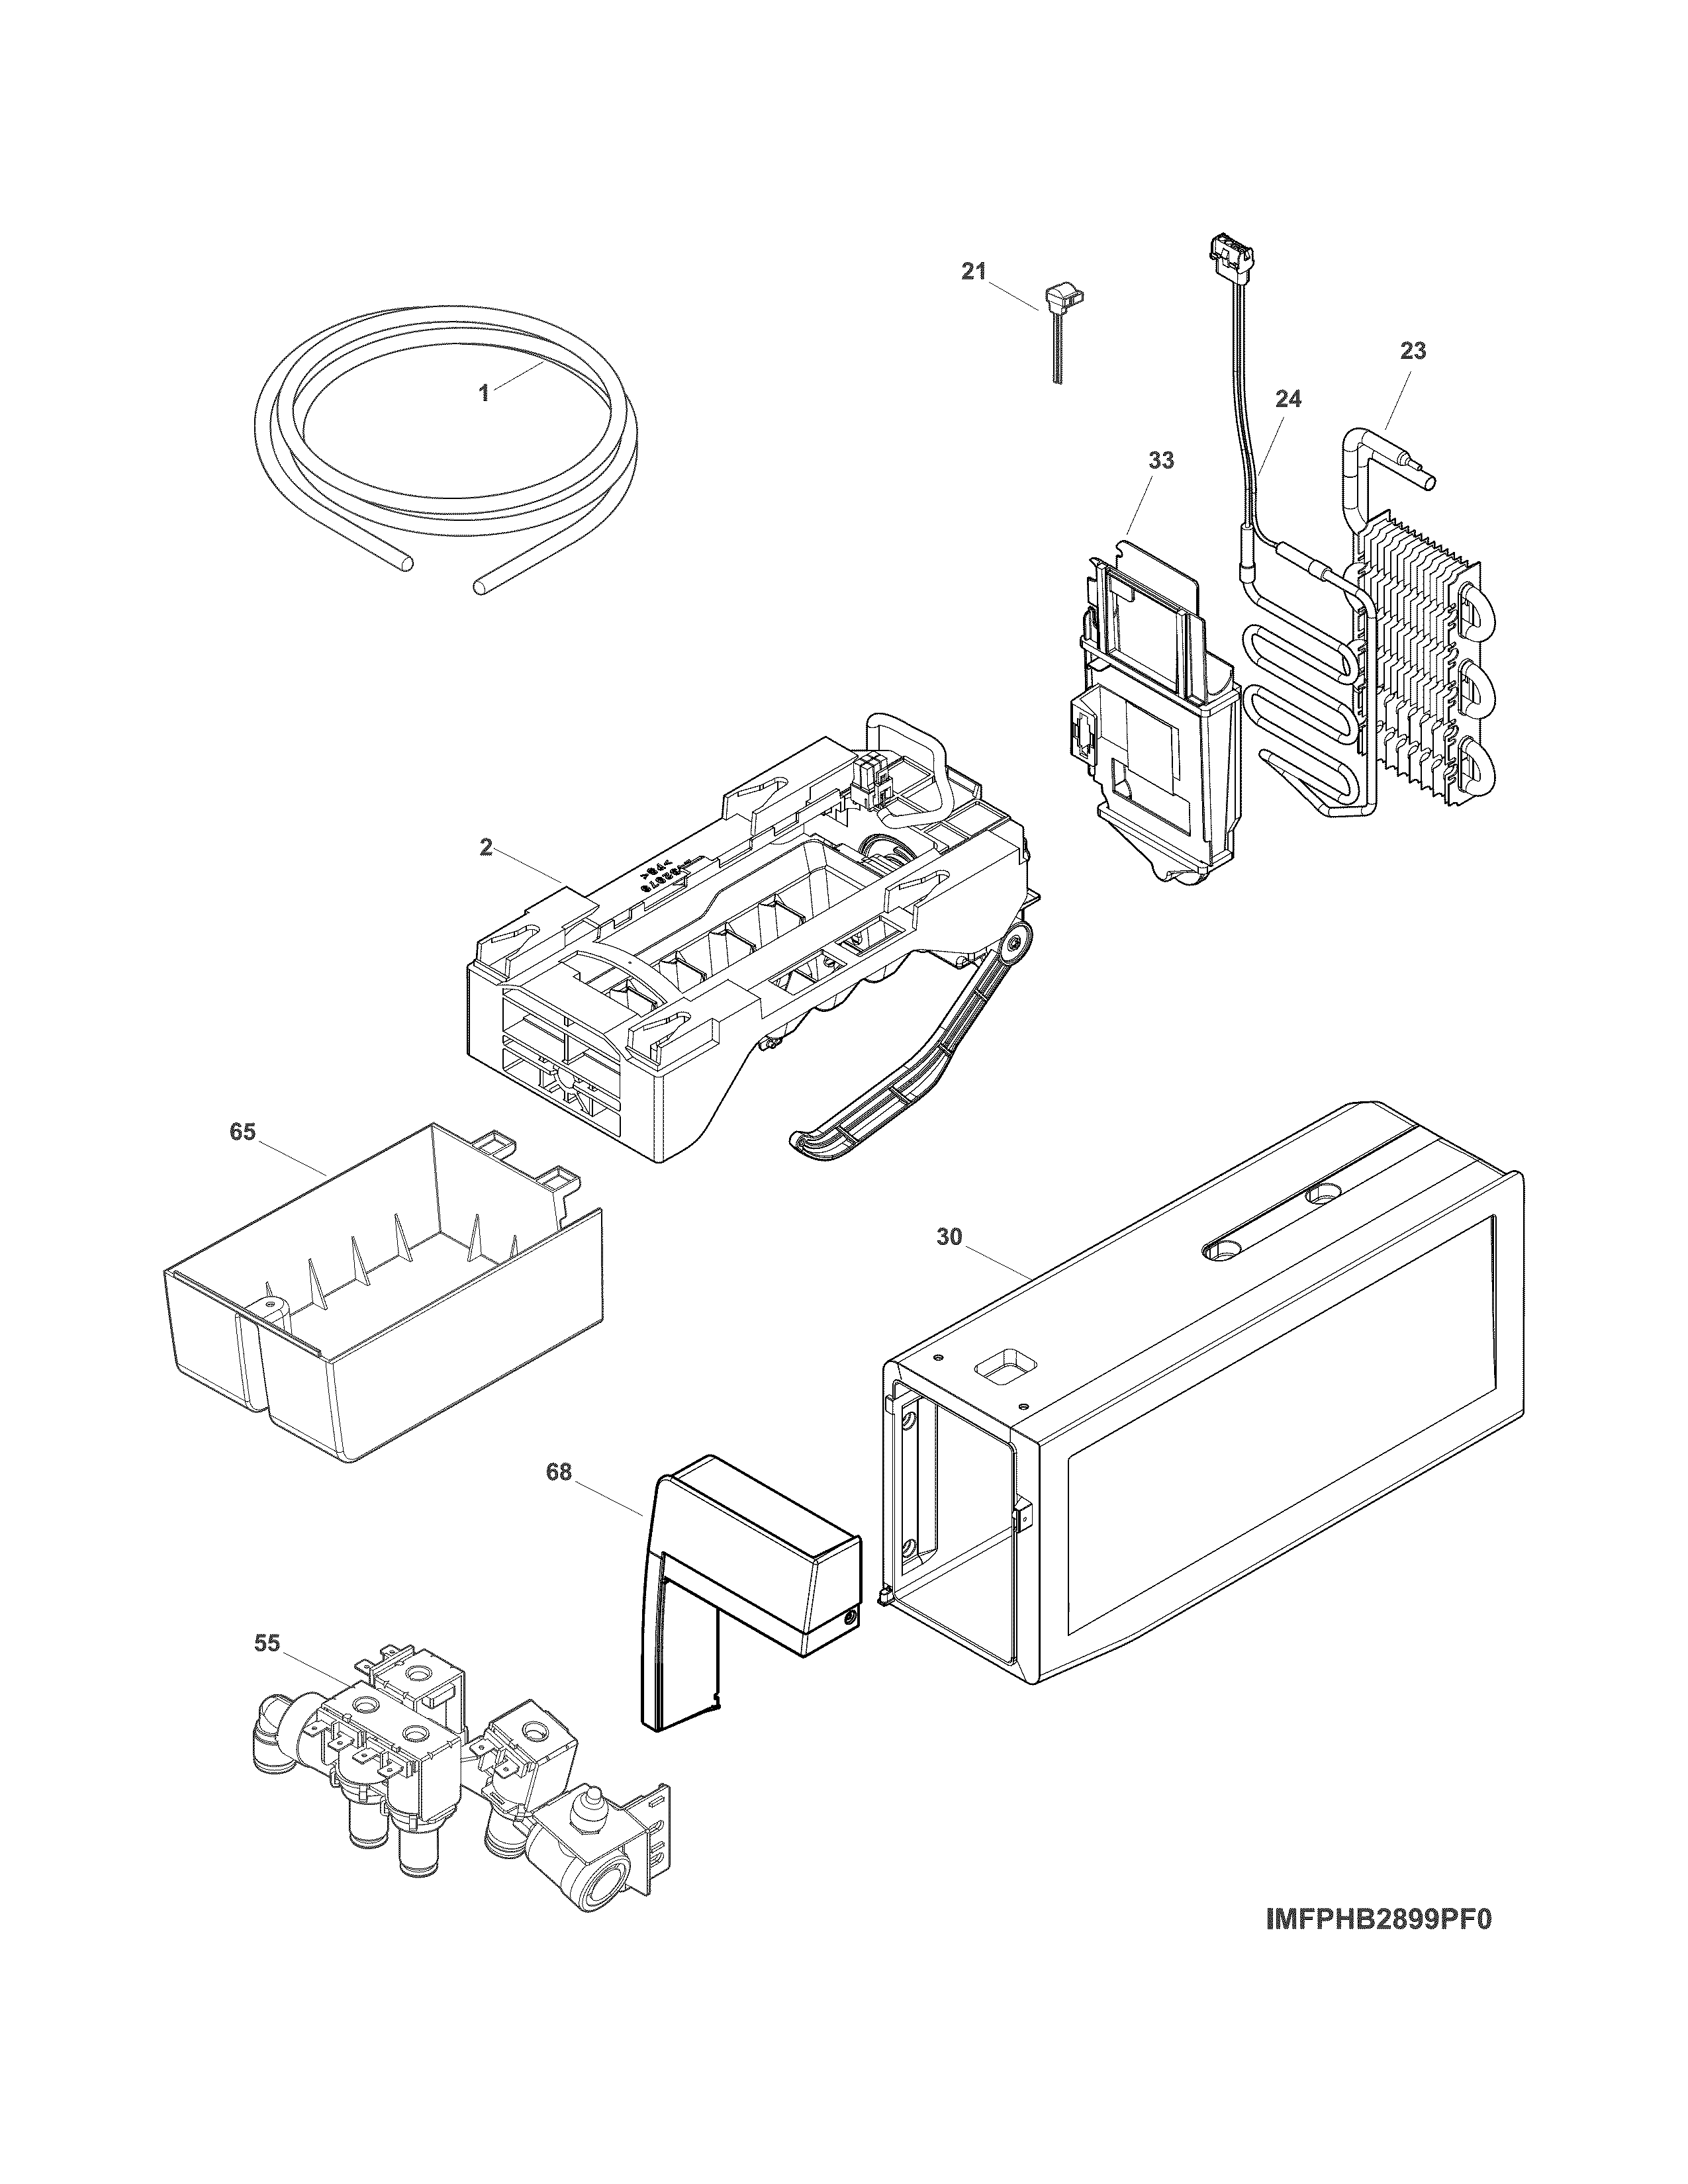 ICE MAKER Diagram & Parts List for Model fghb2866pf9a